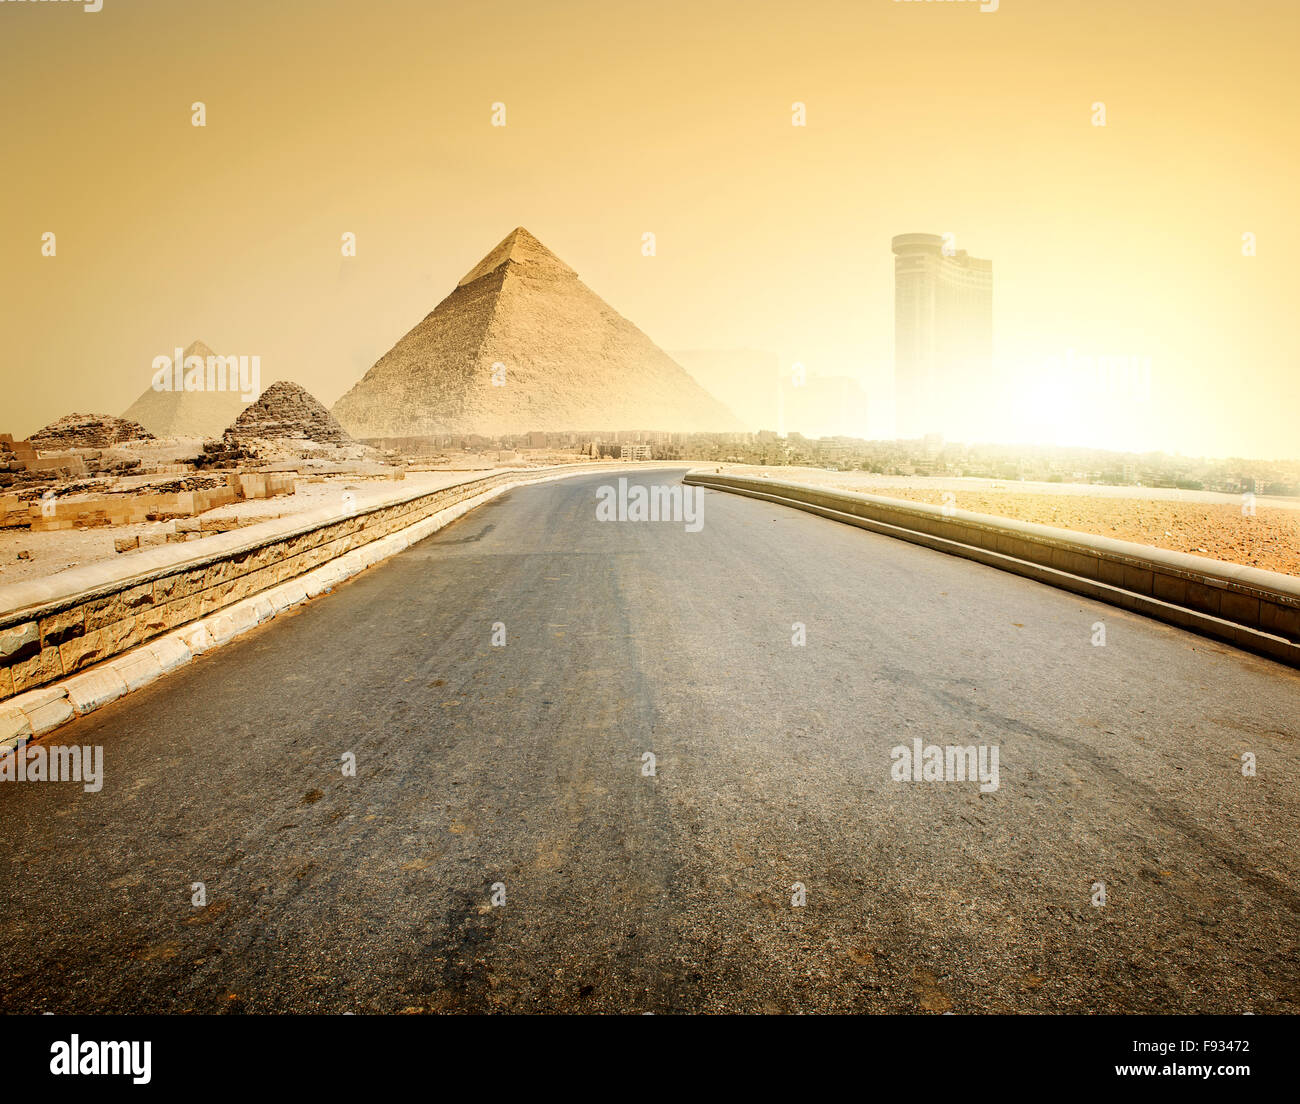 Asphalted road to pyramids and modern buildings of Giza - Stock Image